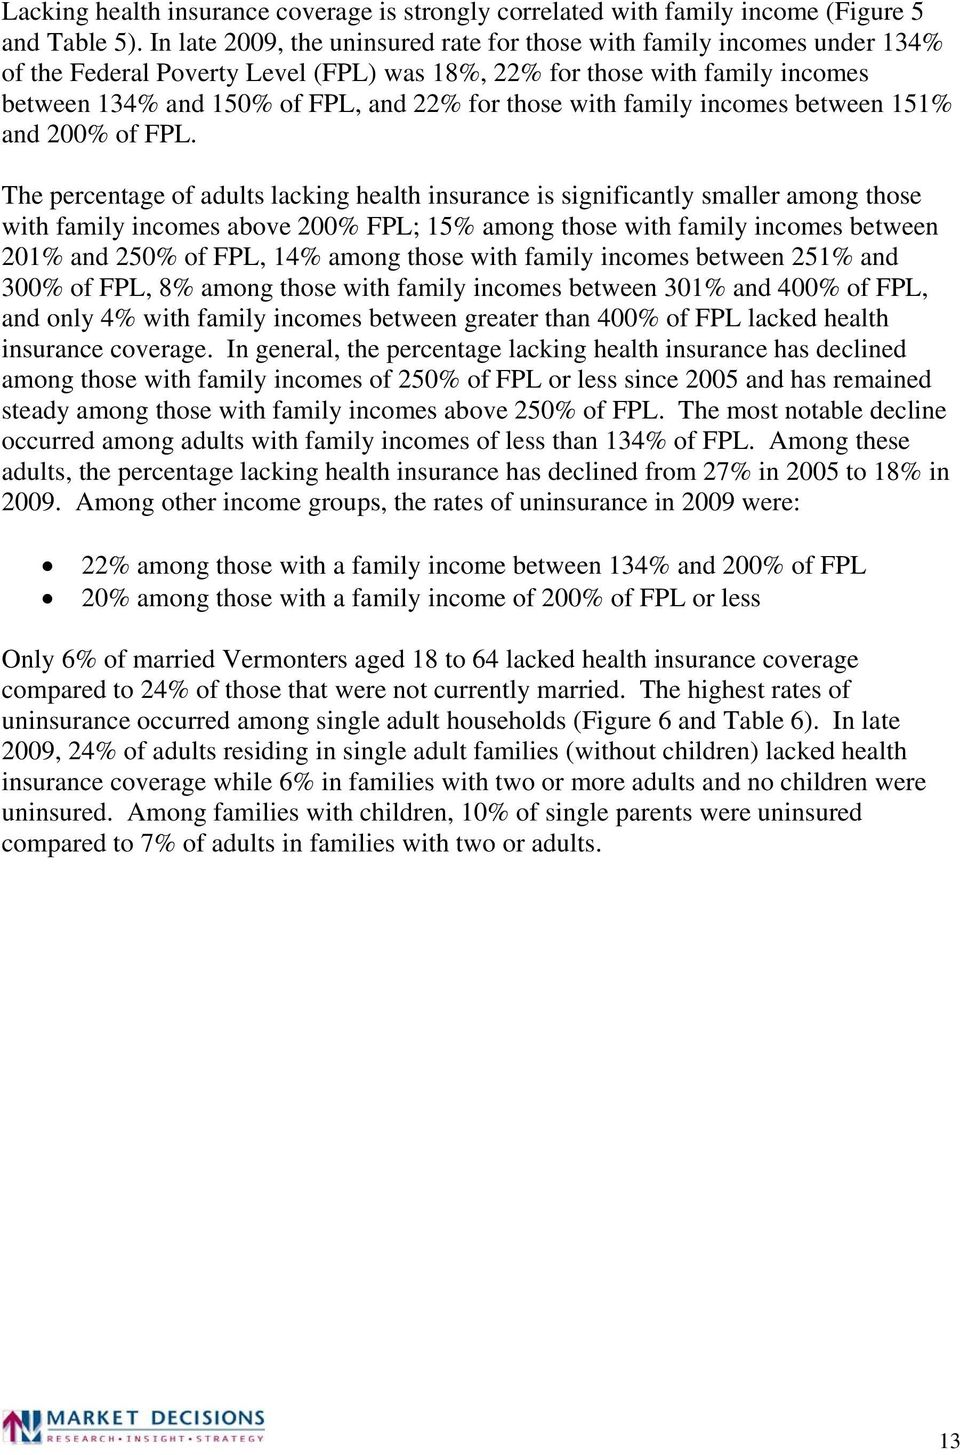 with family incomes between 151% and 200% of FPL.